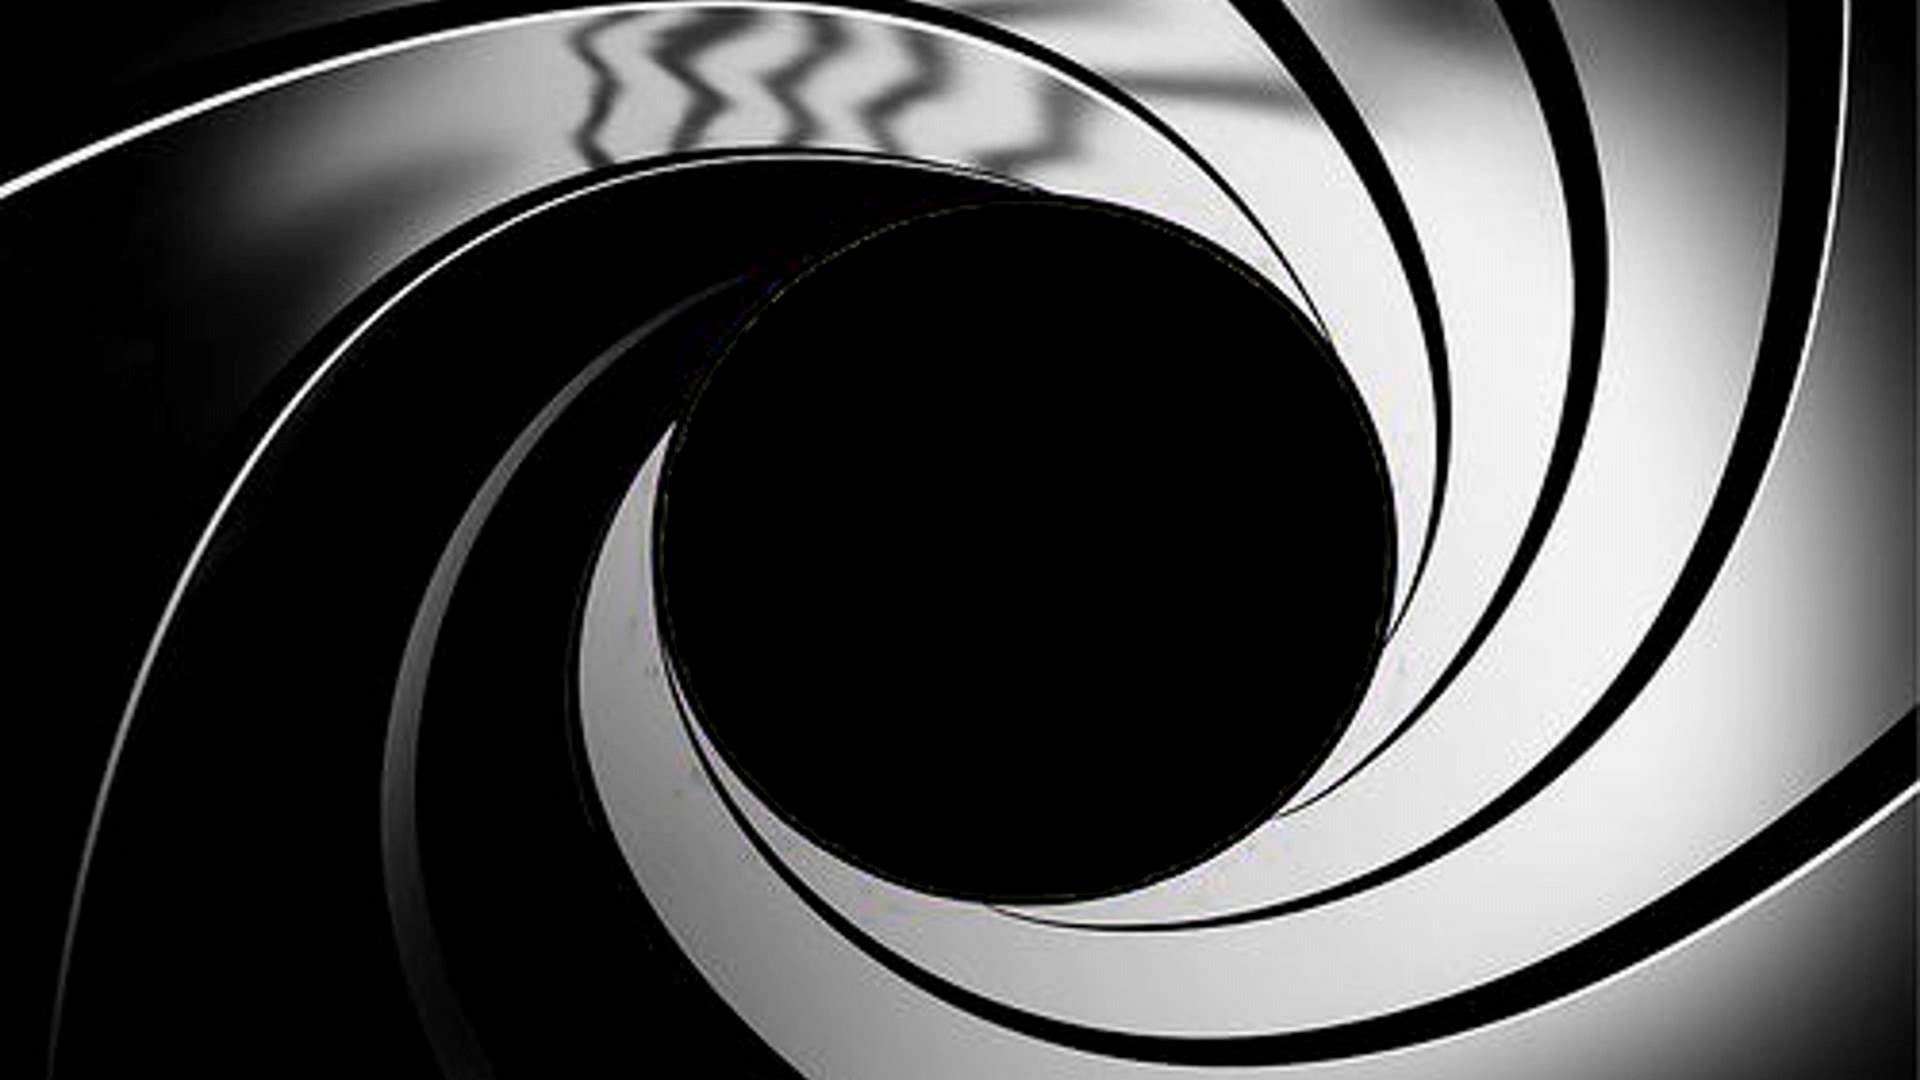 James Bond Background